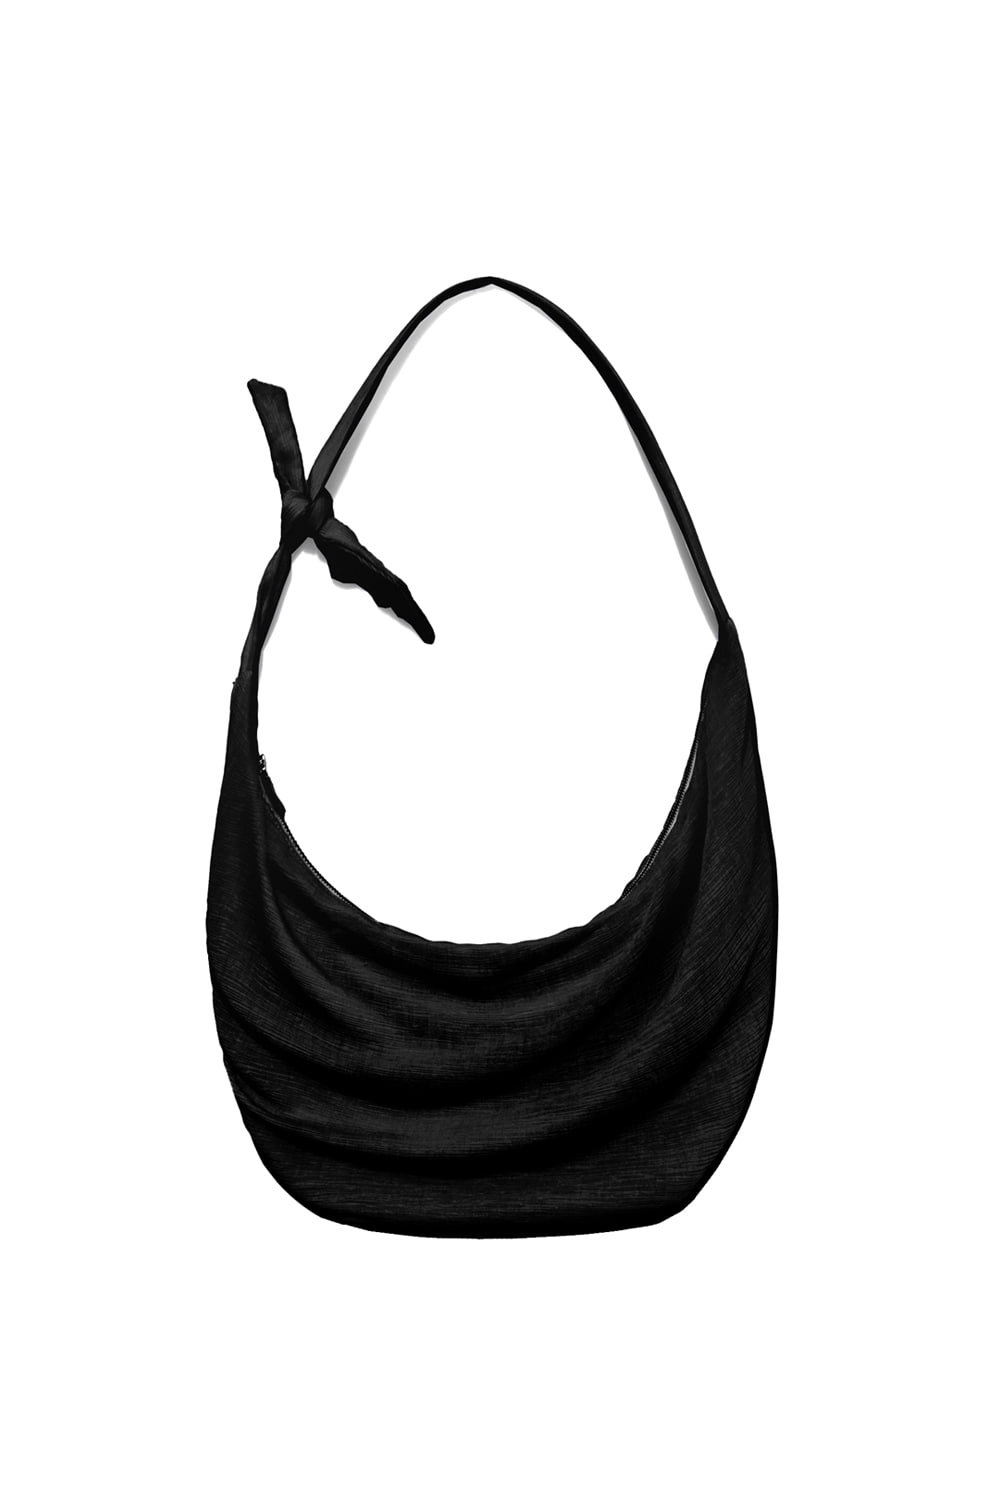 Knot Pleats Cross Bag Women [Black]